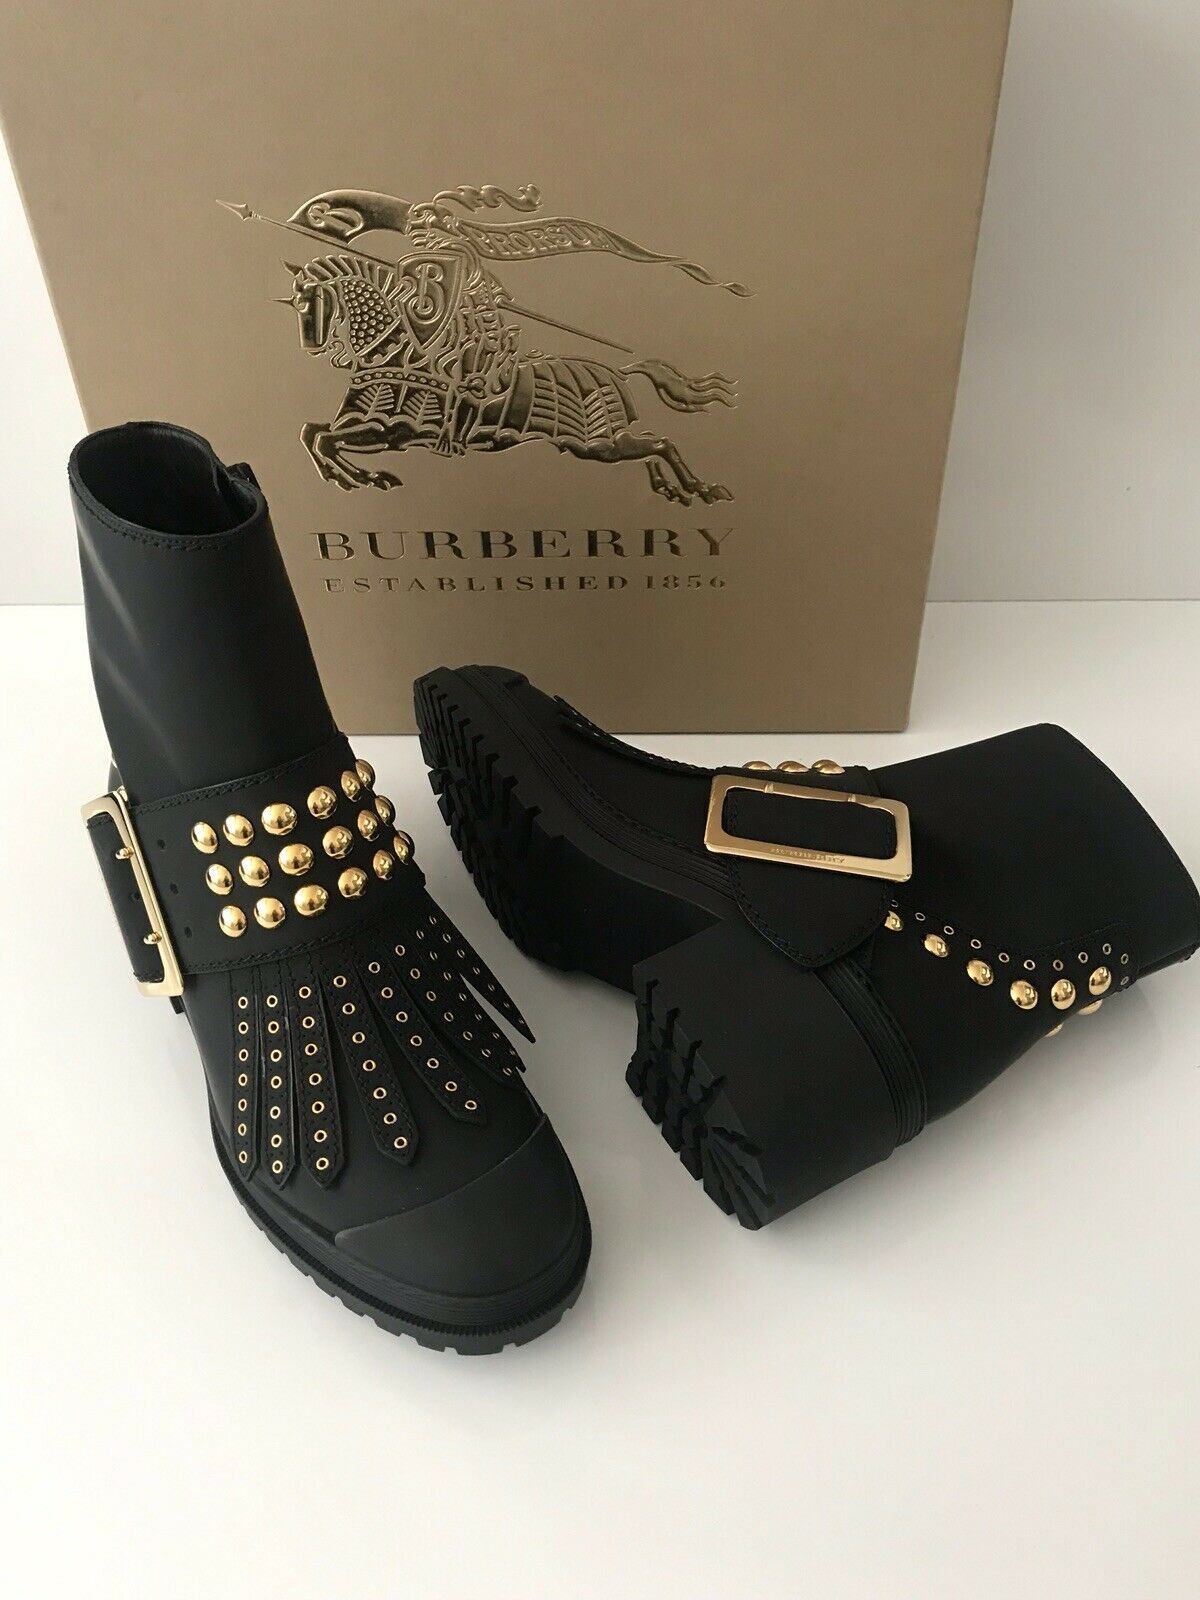 NIB Burberry Whitchester Black Leather Fringe Gold Studded Belted Boots 40.5 EU